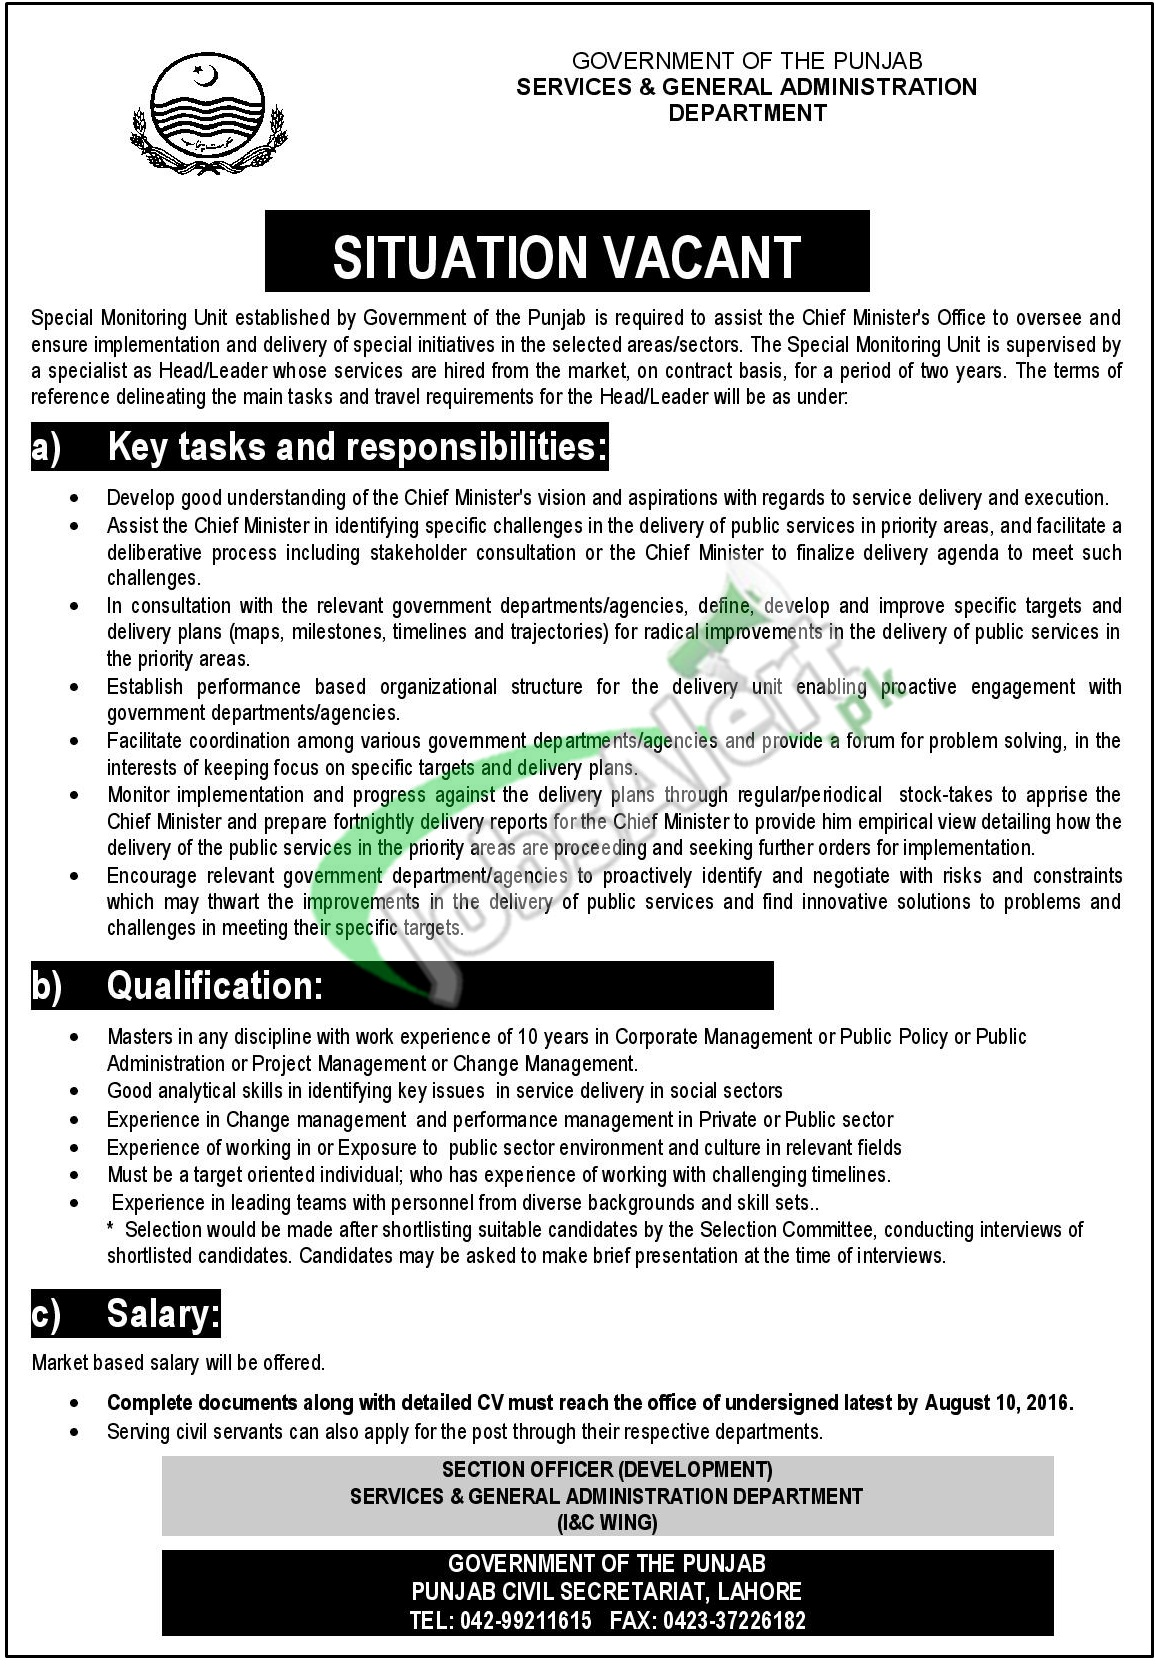 Services and General Administration Department Punjab Jobs